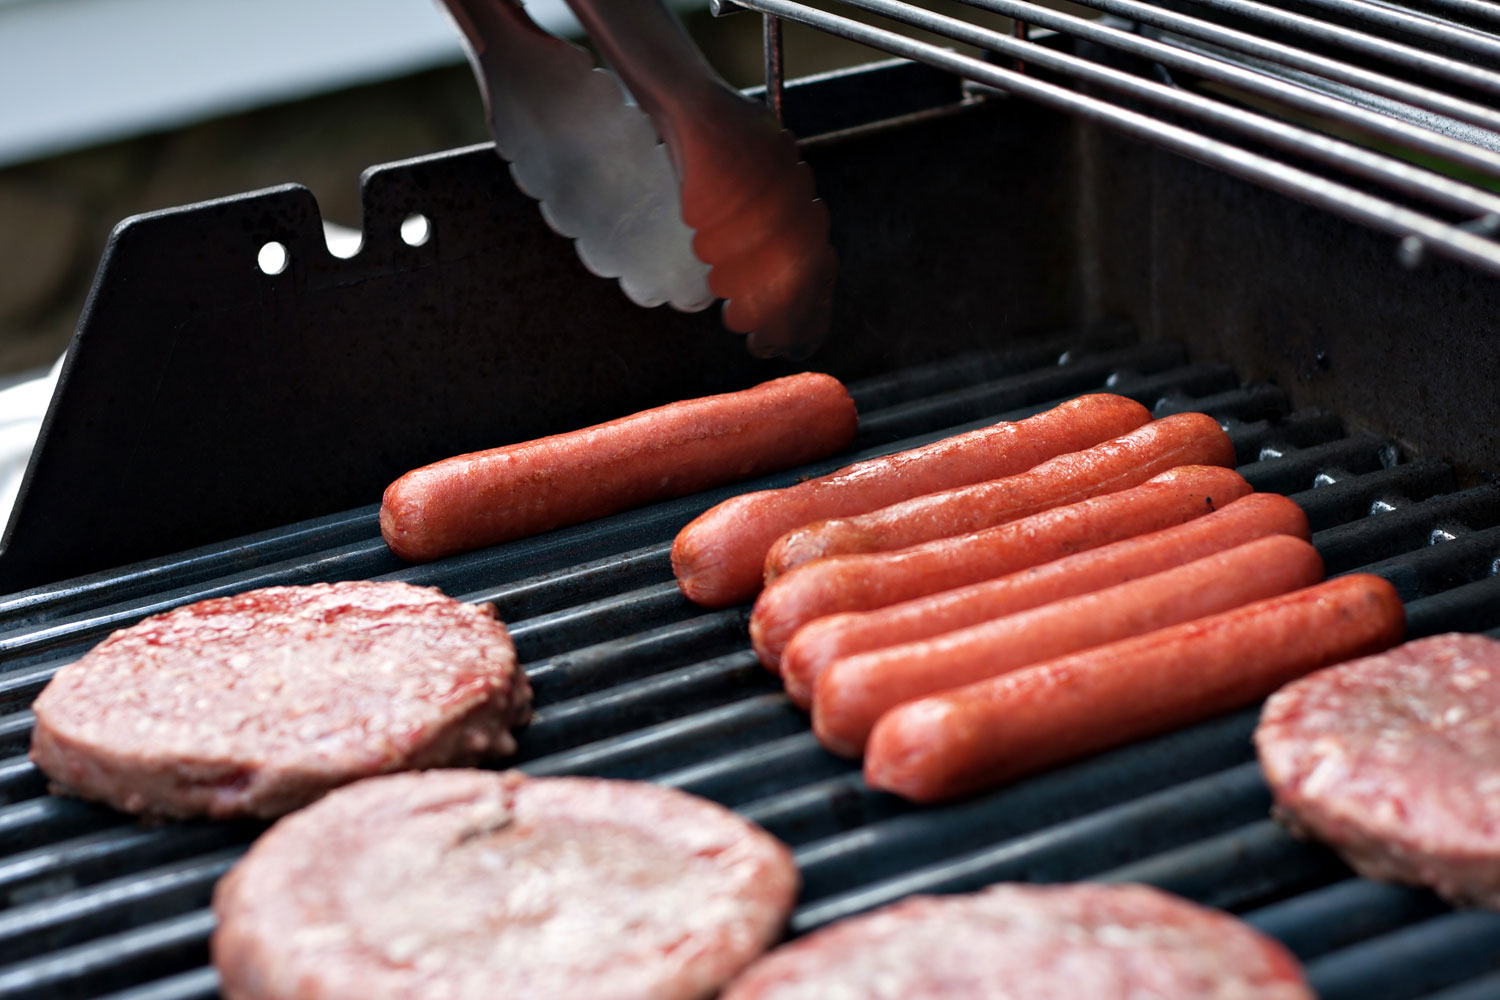 close up photo of hamburgers and hotdogs on the grill